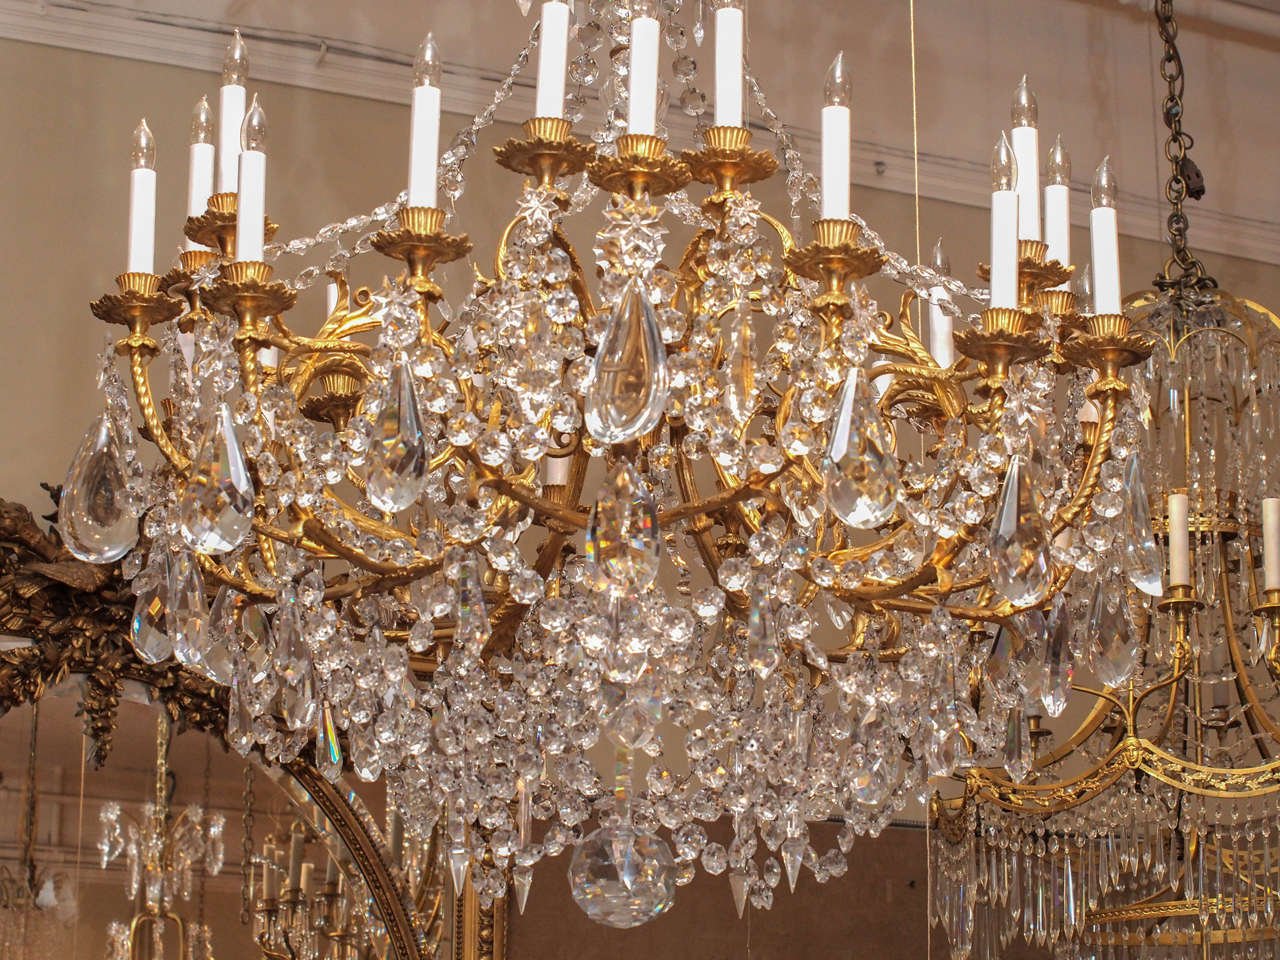 19th Century Antique French Baccarat Crystal and Bronze D'ore 24 Light Chandelier circa 1890 For Sale